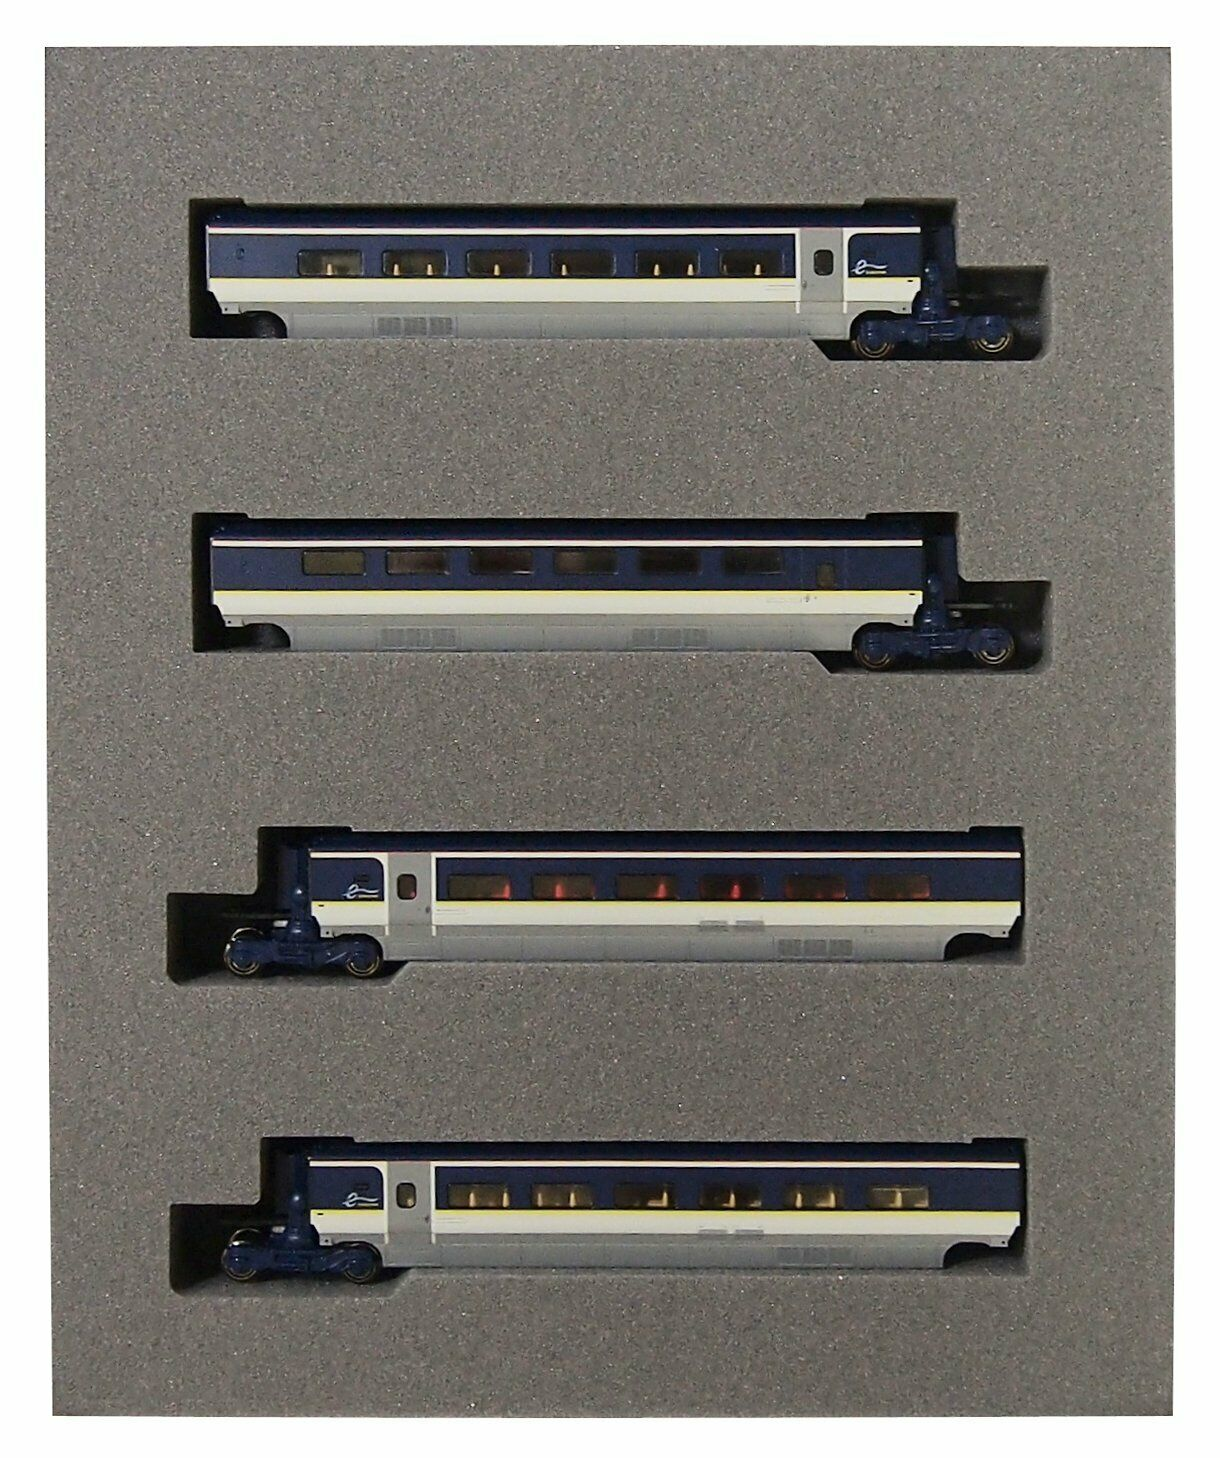 Kato 10-1298 Eurostar Coloree e300 Conjunto de 4 coches Add-on (escala N)